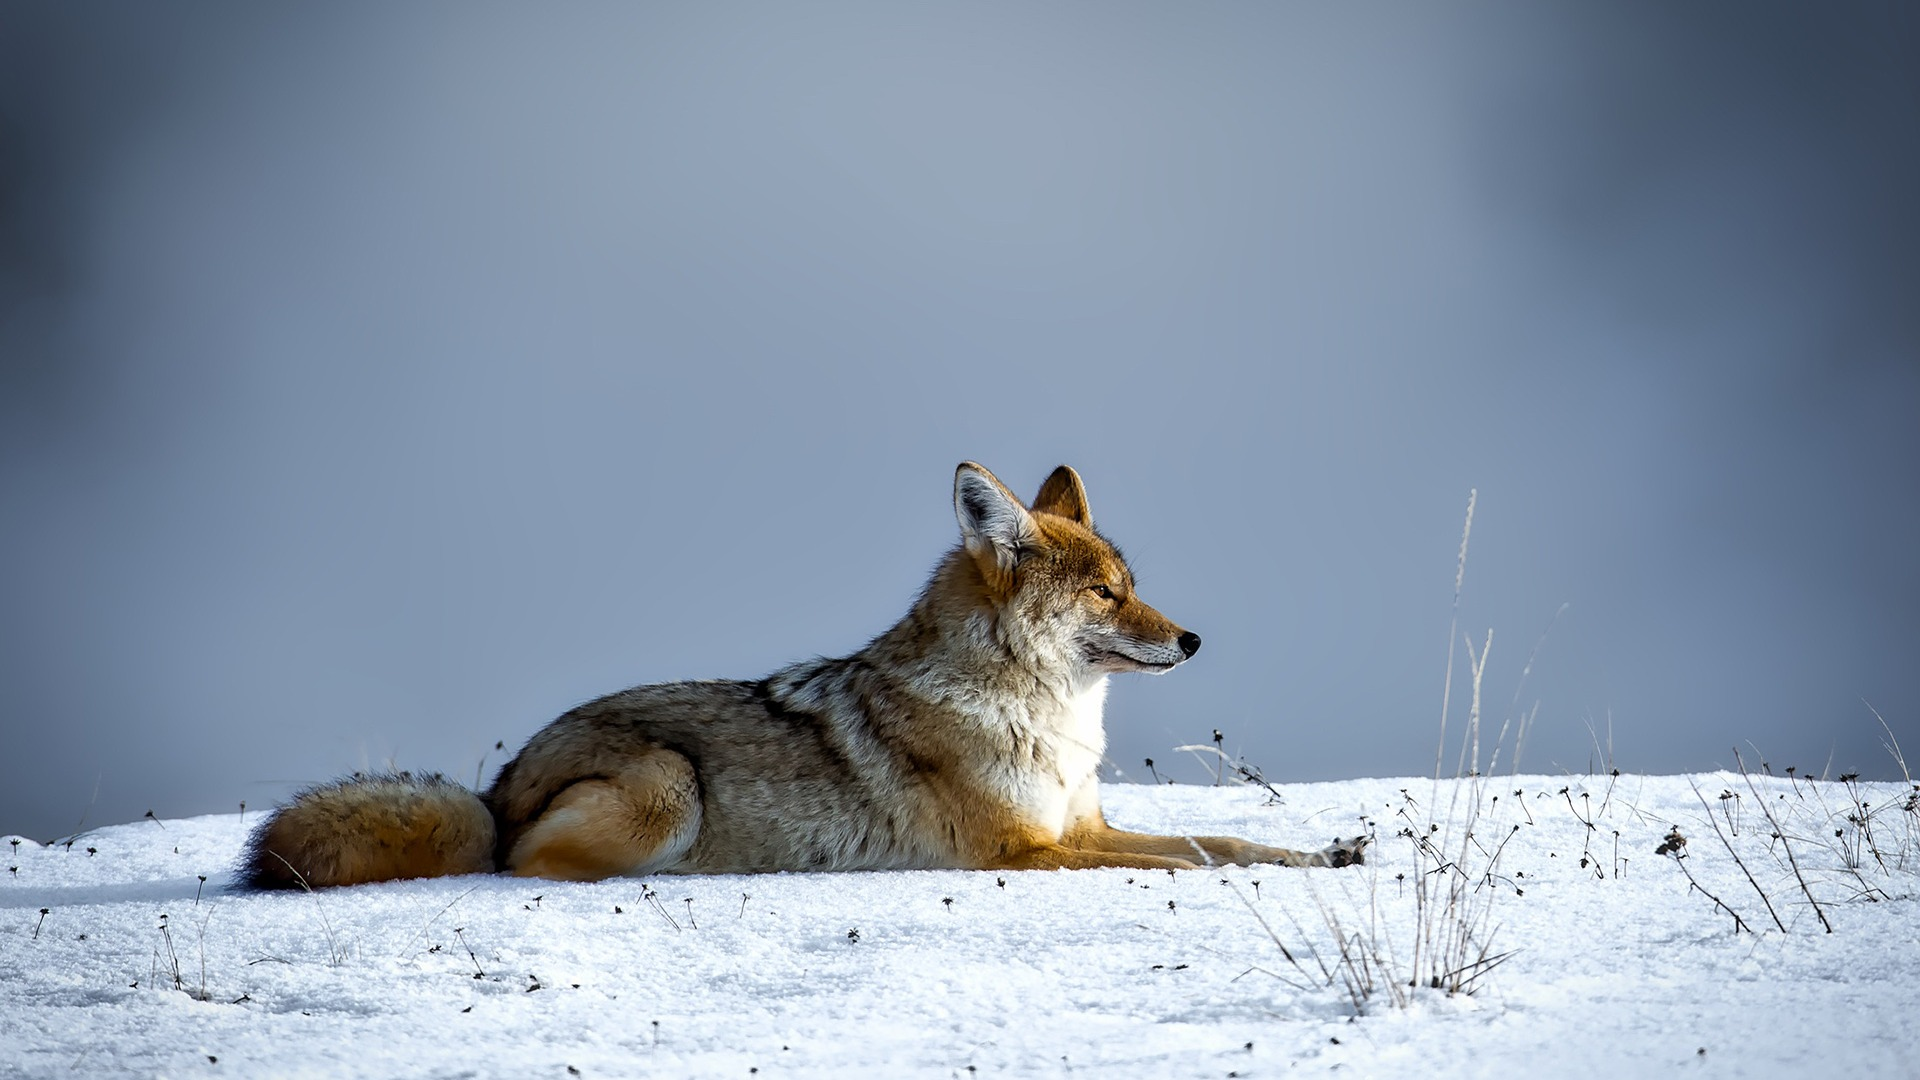 Canine_cold_coyote_Animal_Wallpaper_1920x1080.jpg